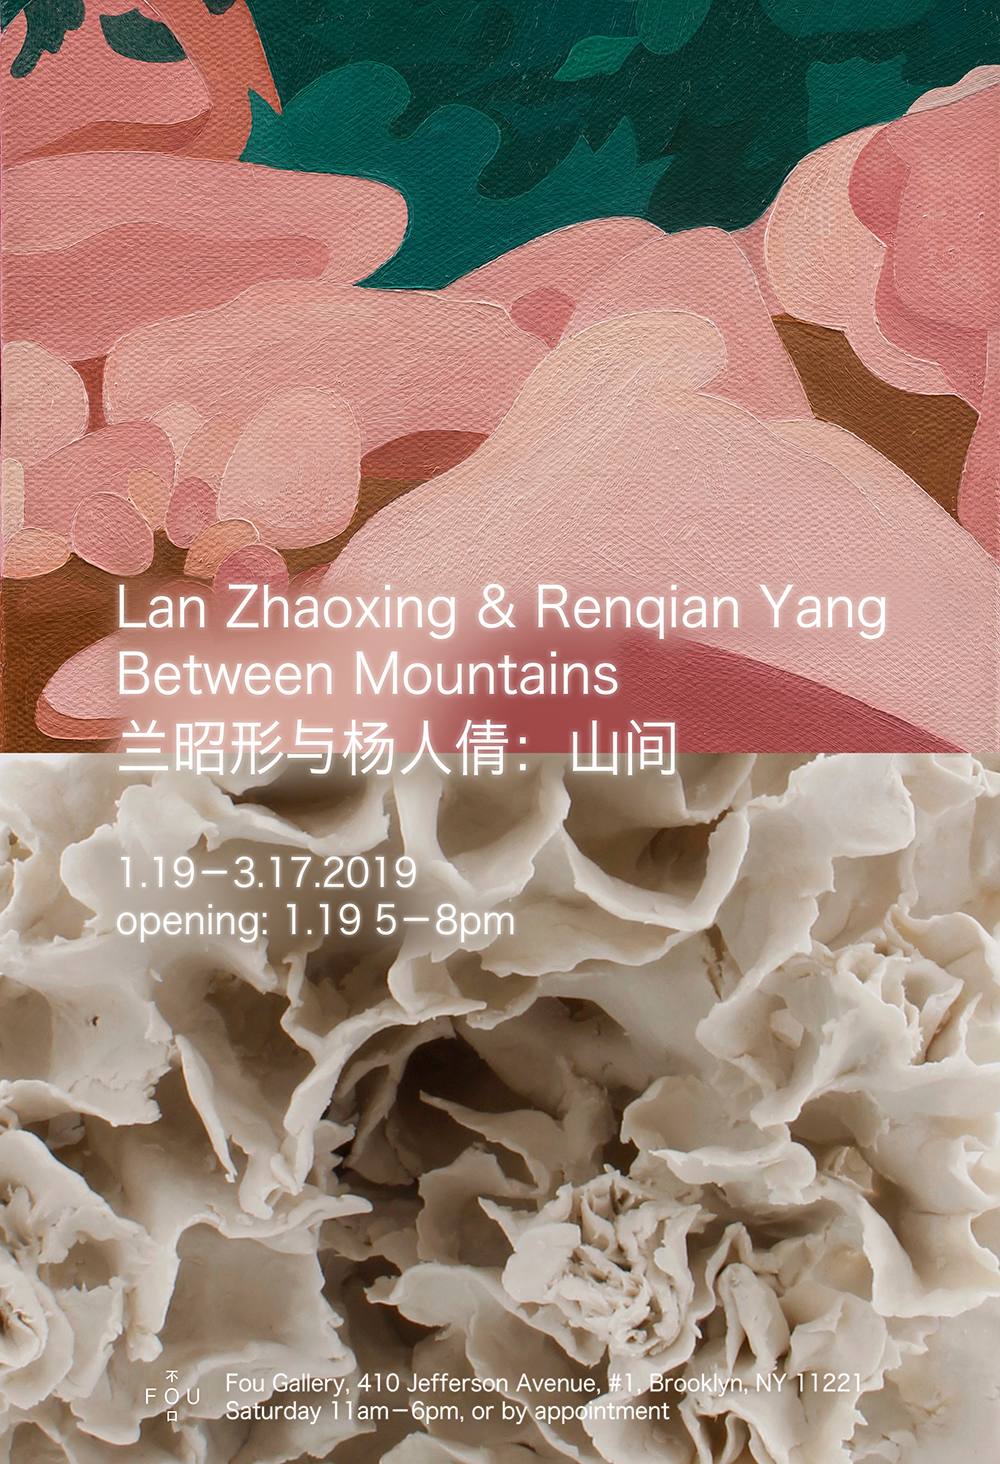 Lan Zhaoxing and Renqian Yang: Between Mountains Exhibition Time:  January 19–March 17, 2019  Location:  Fou Gallery, 410 Jefferson Avenue, #1, New York.